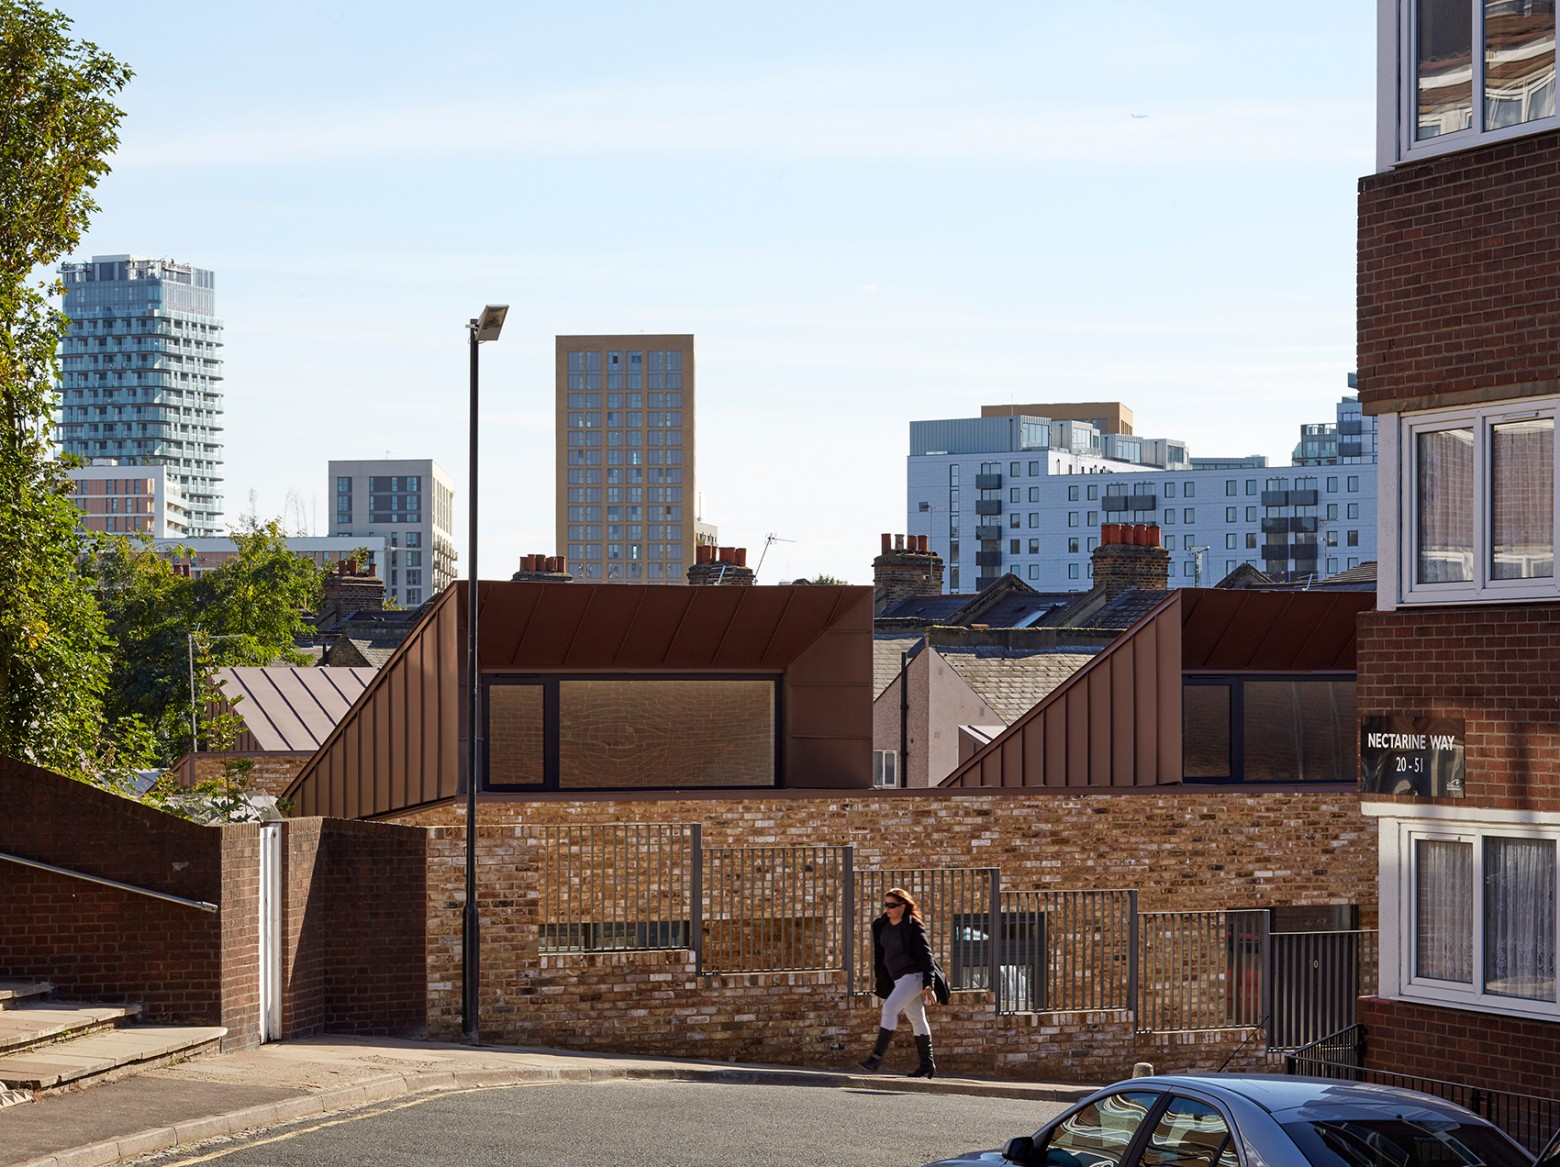 Projects shortlisted for Placemaking Awards